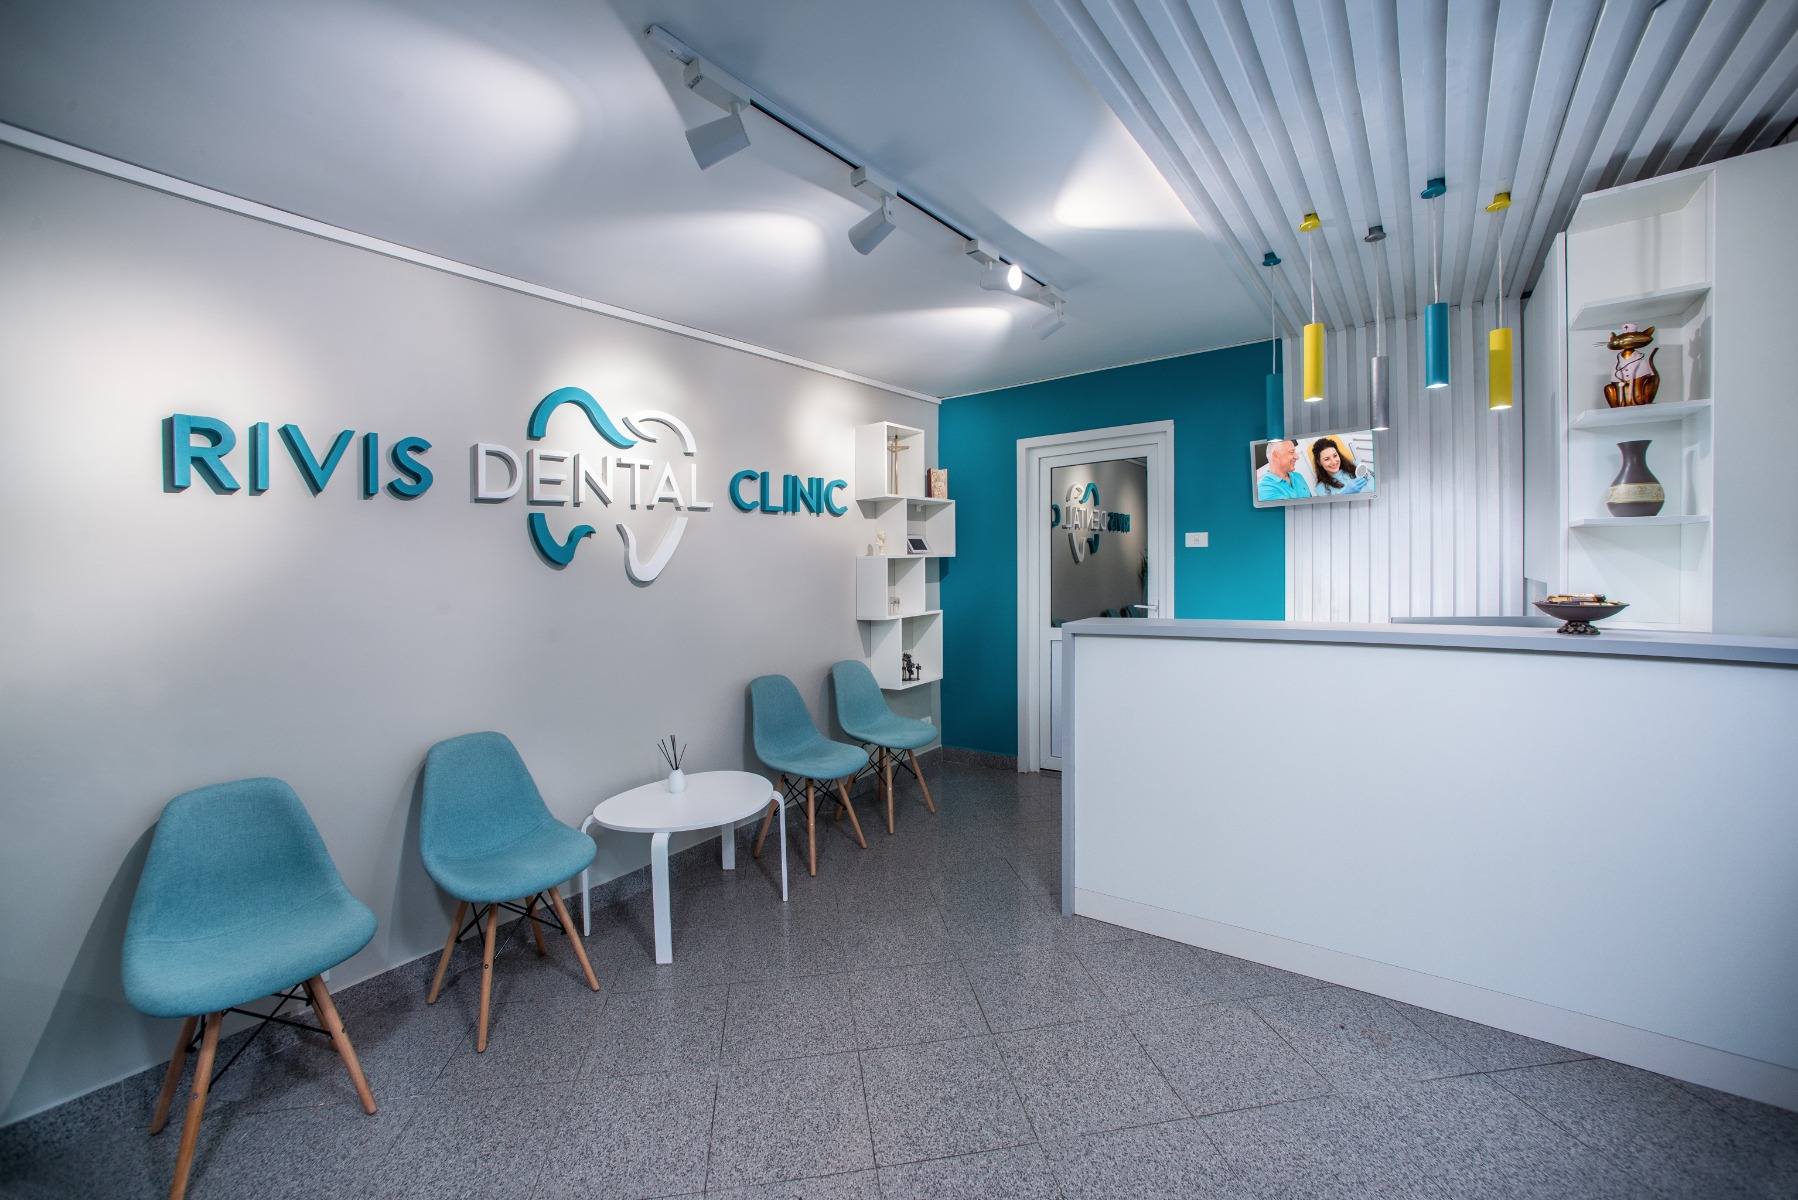 revis dental clinic